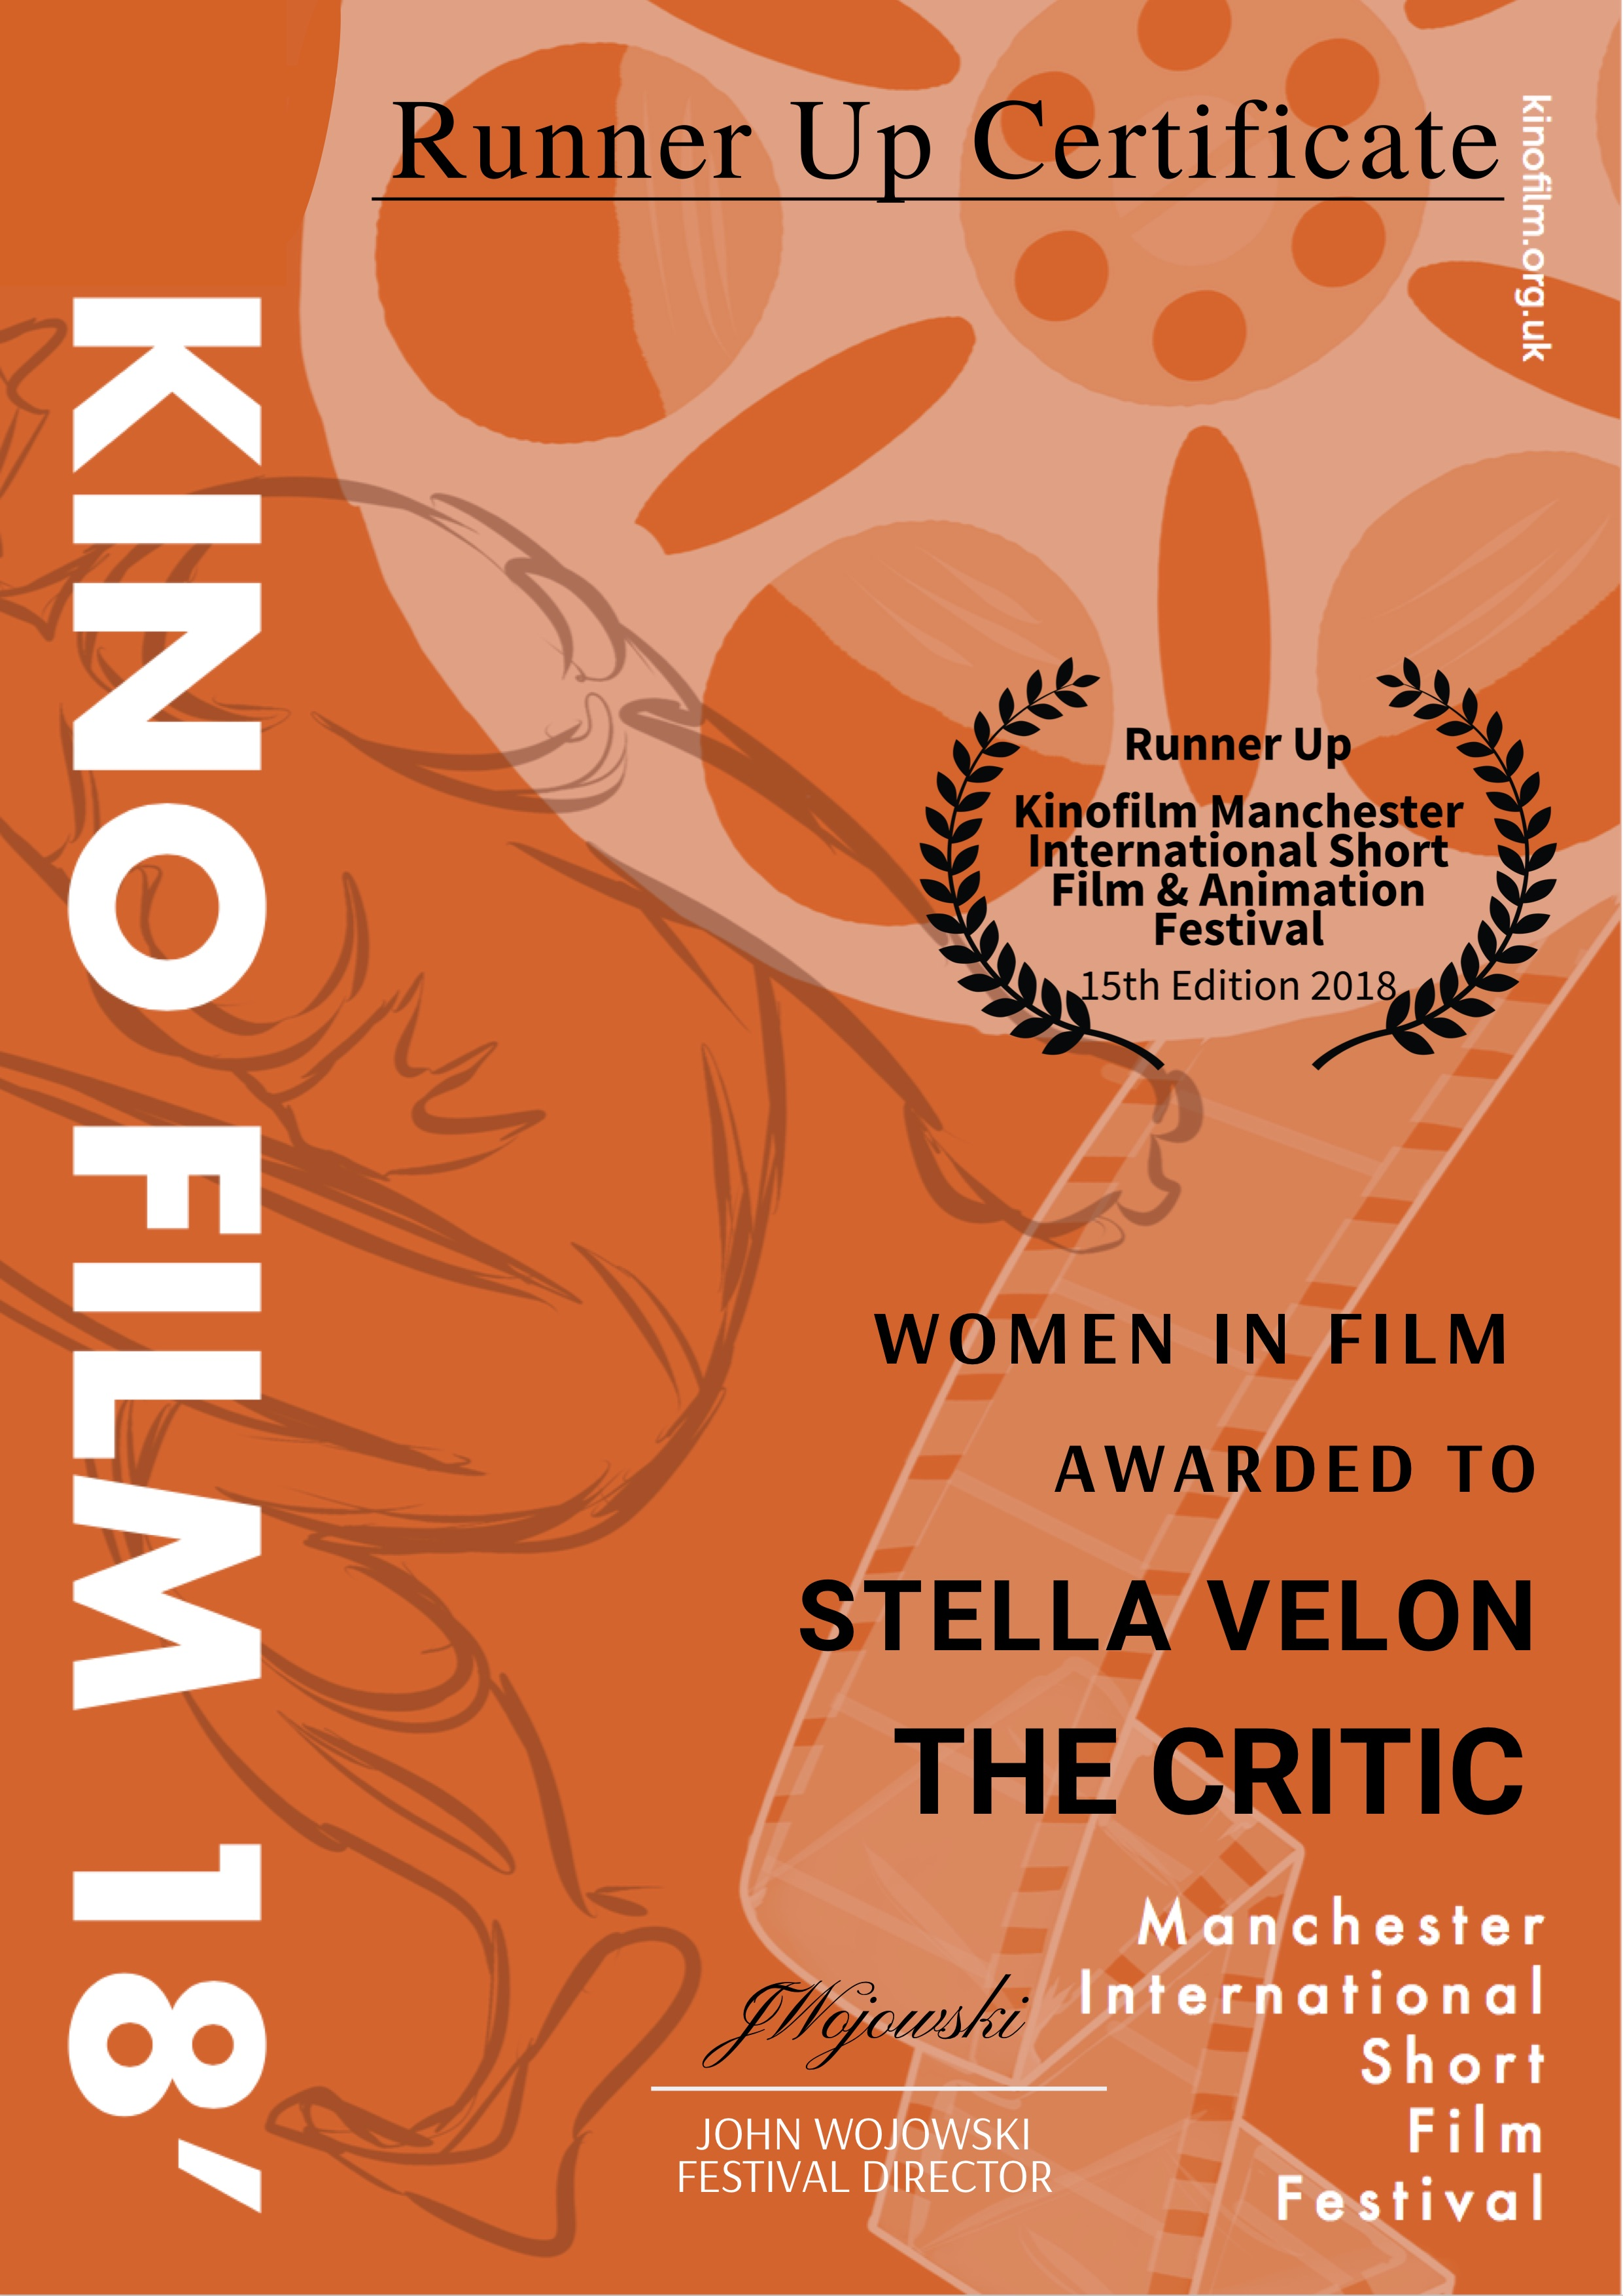 https://kinofilm.org.uk/kinofilm-15th-edition-award-winners-runners-up-and-special-mentions/